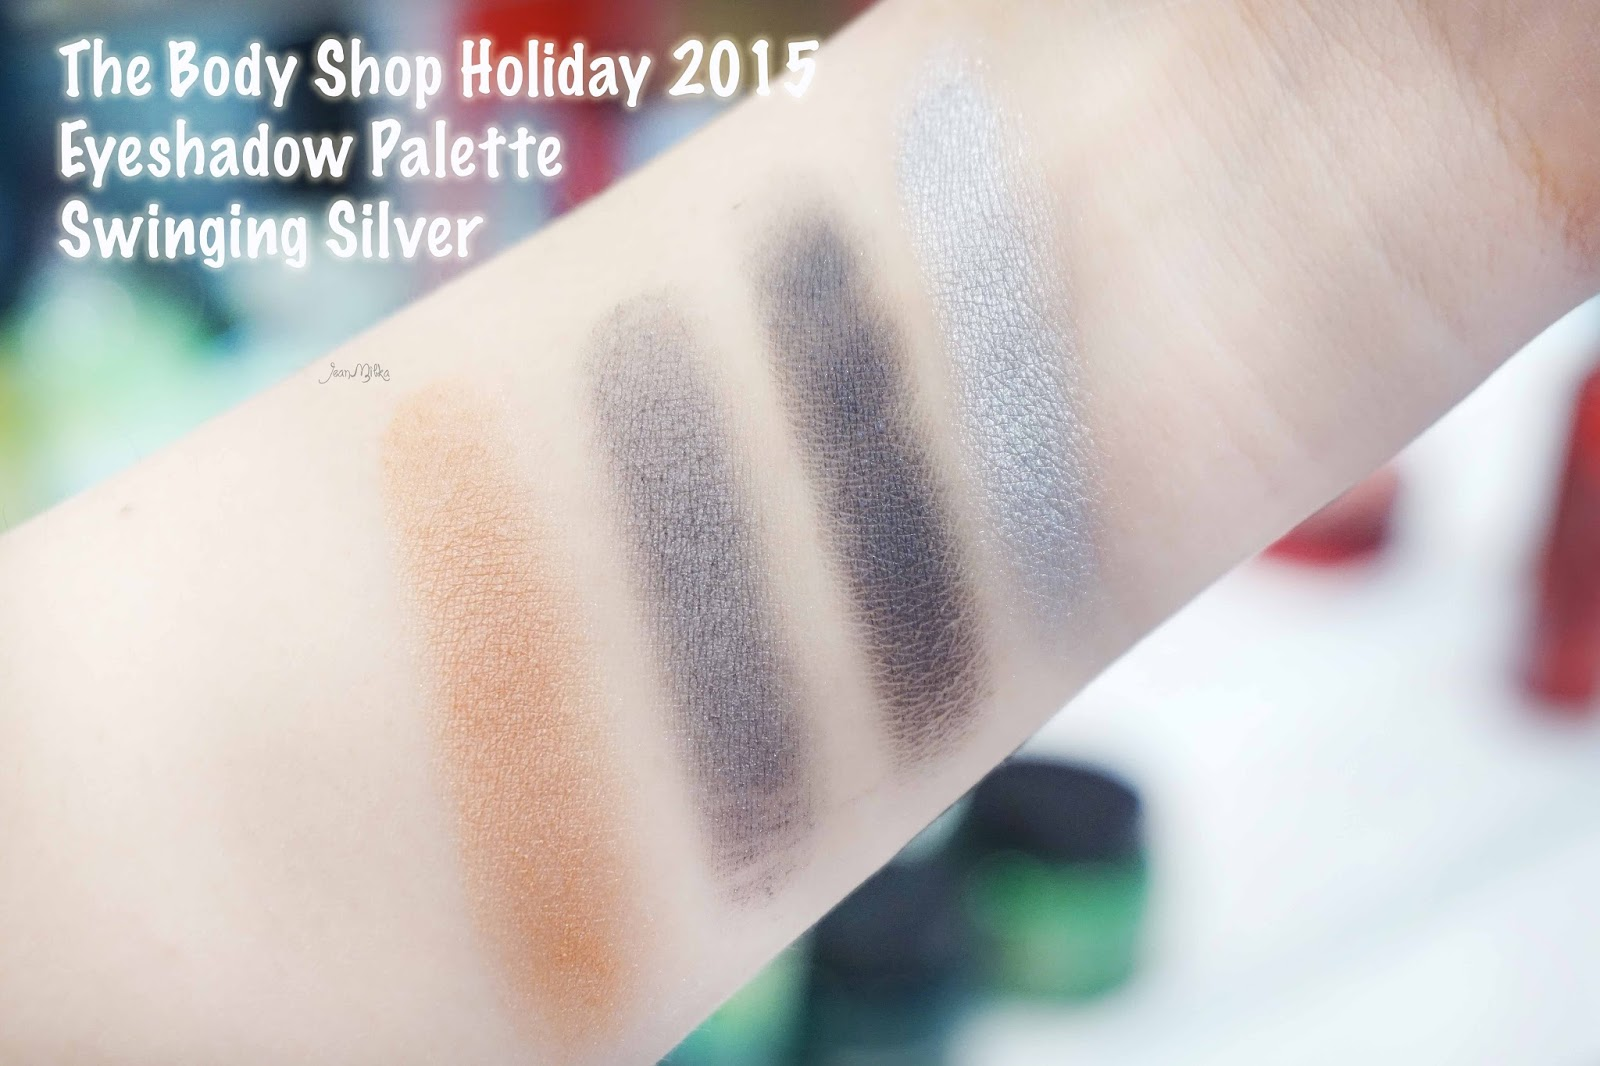 the body shop, body shop, christmas, christmas gift, gift, holiday, gifts. exclusive preview, swinging silver, eyeshadow, eyeshadow palette